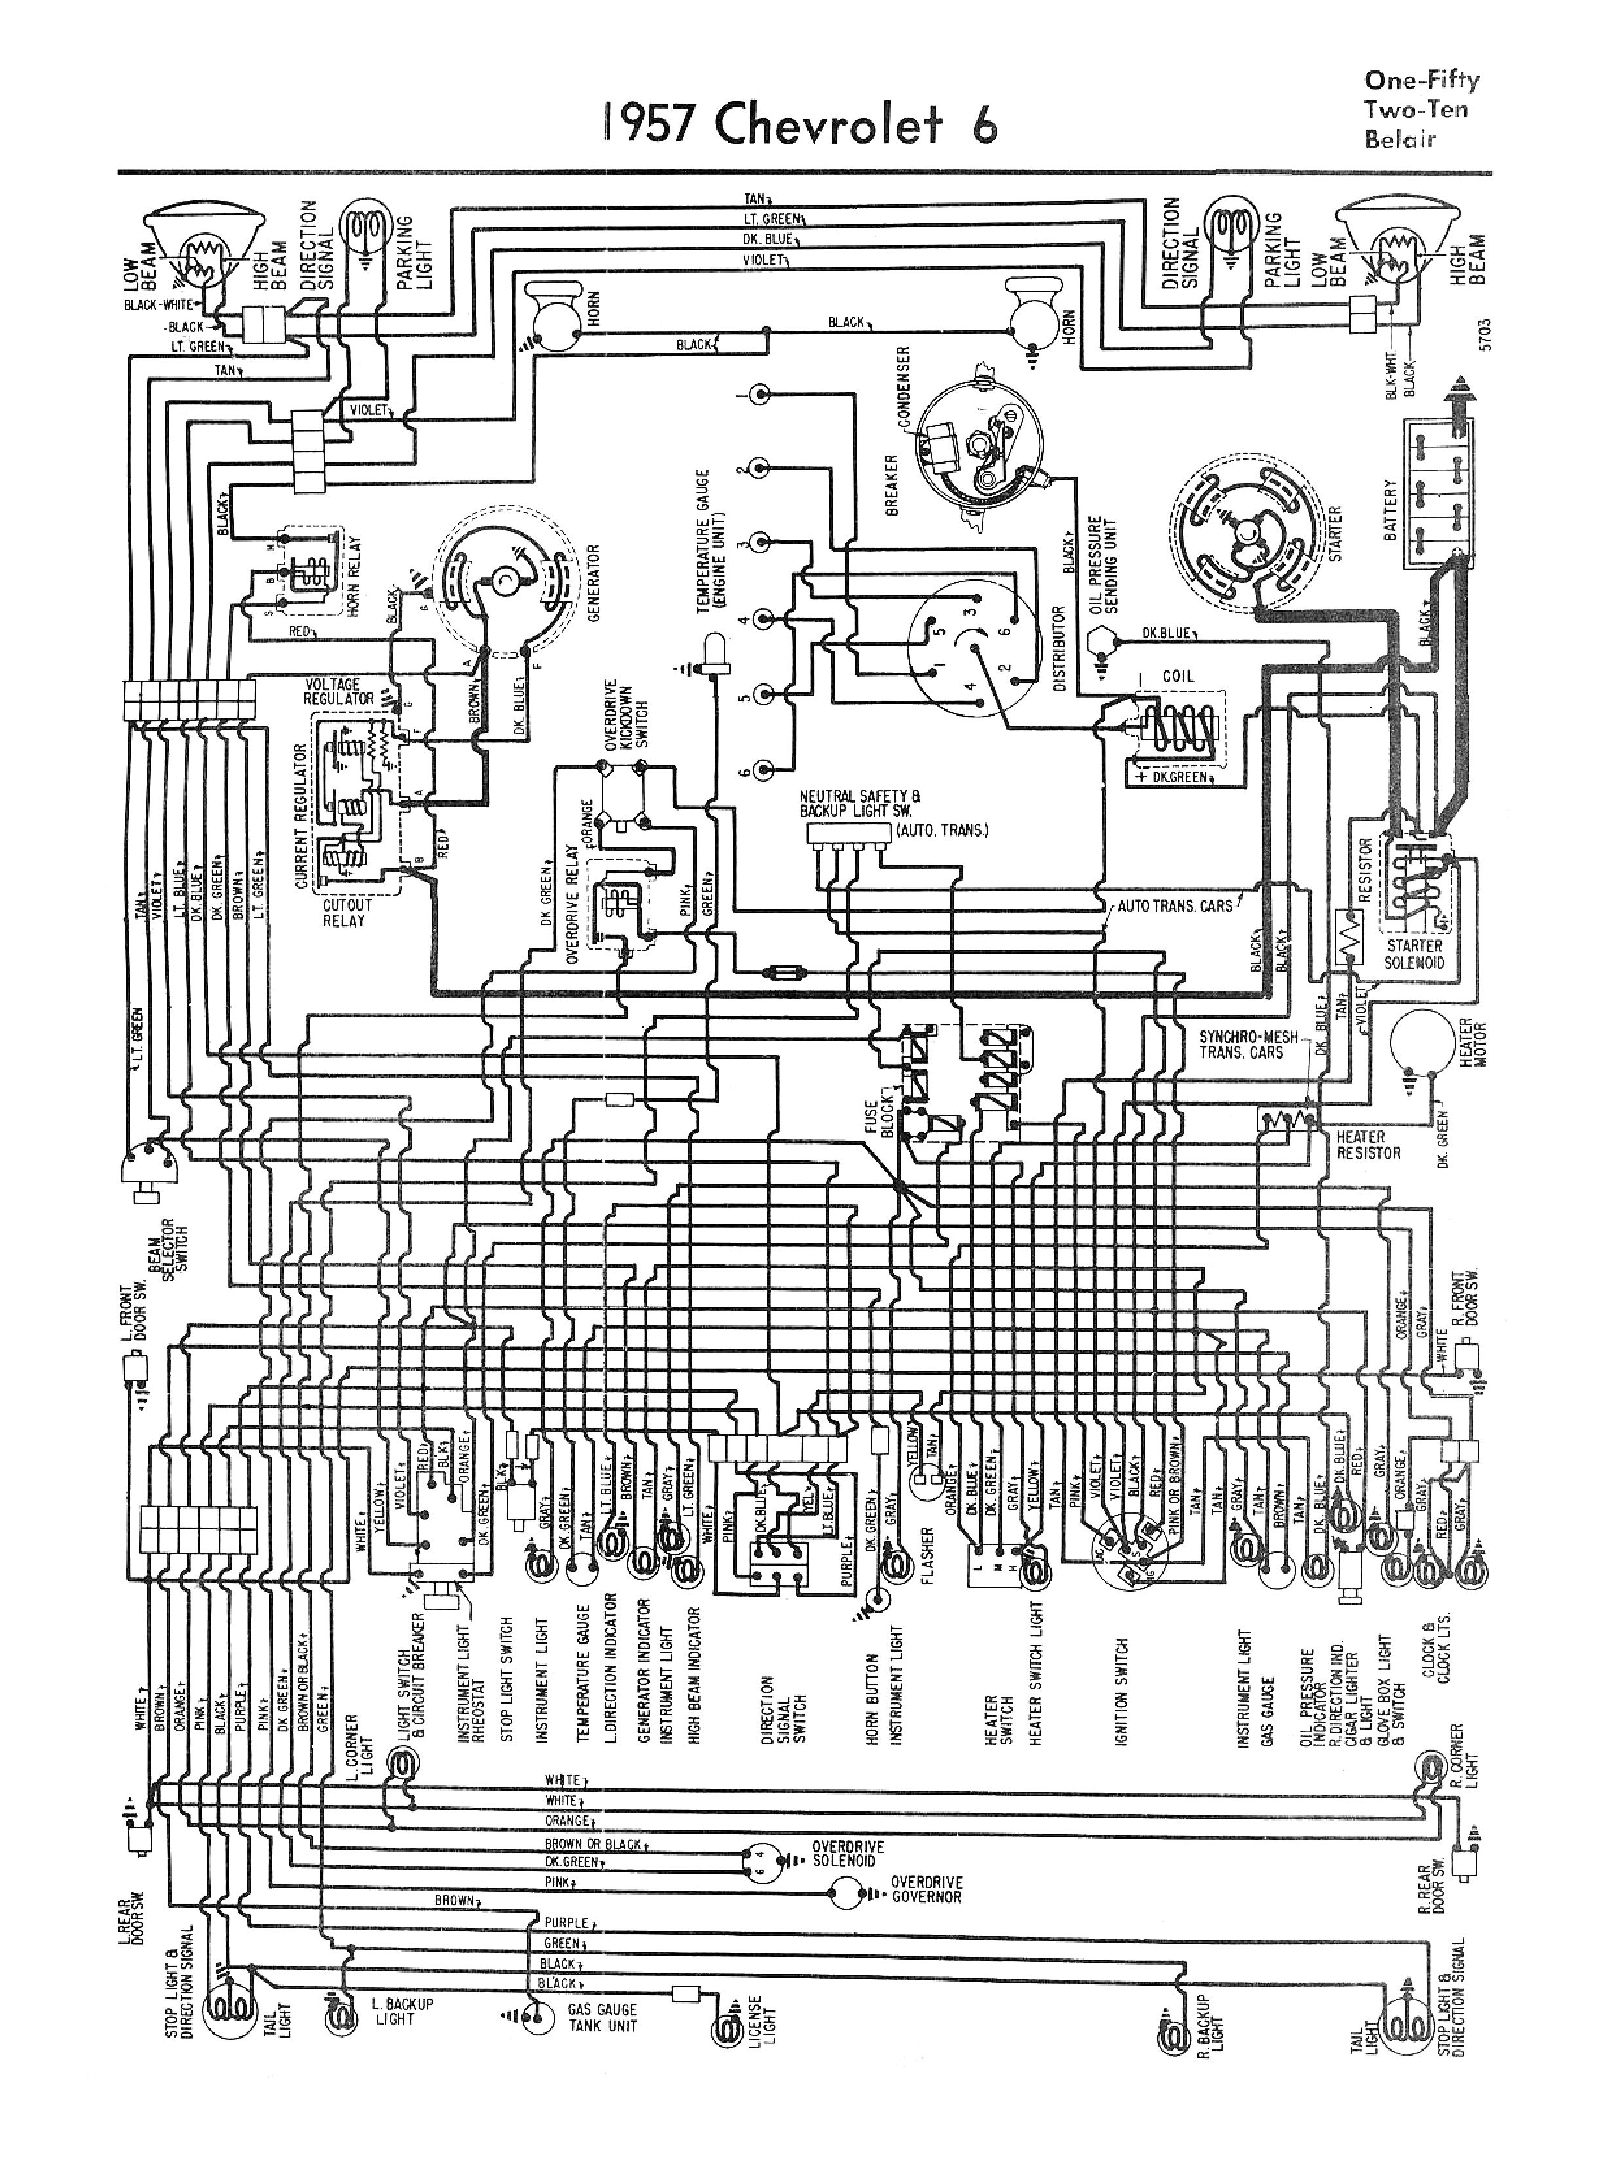 Chevy Wiring Diagrams 1960 Impala Diagram 1957 Car 6 Cylinder